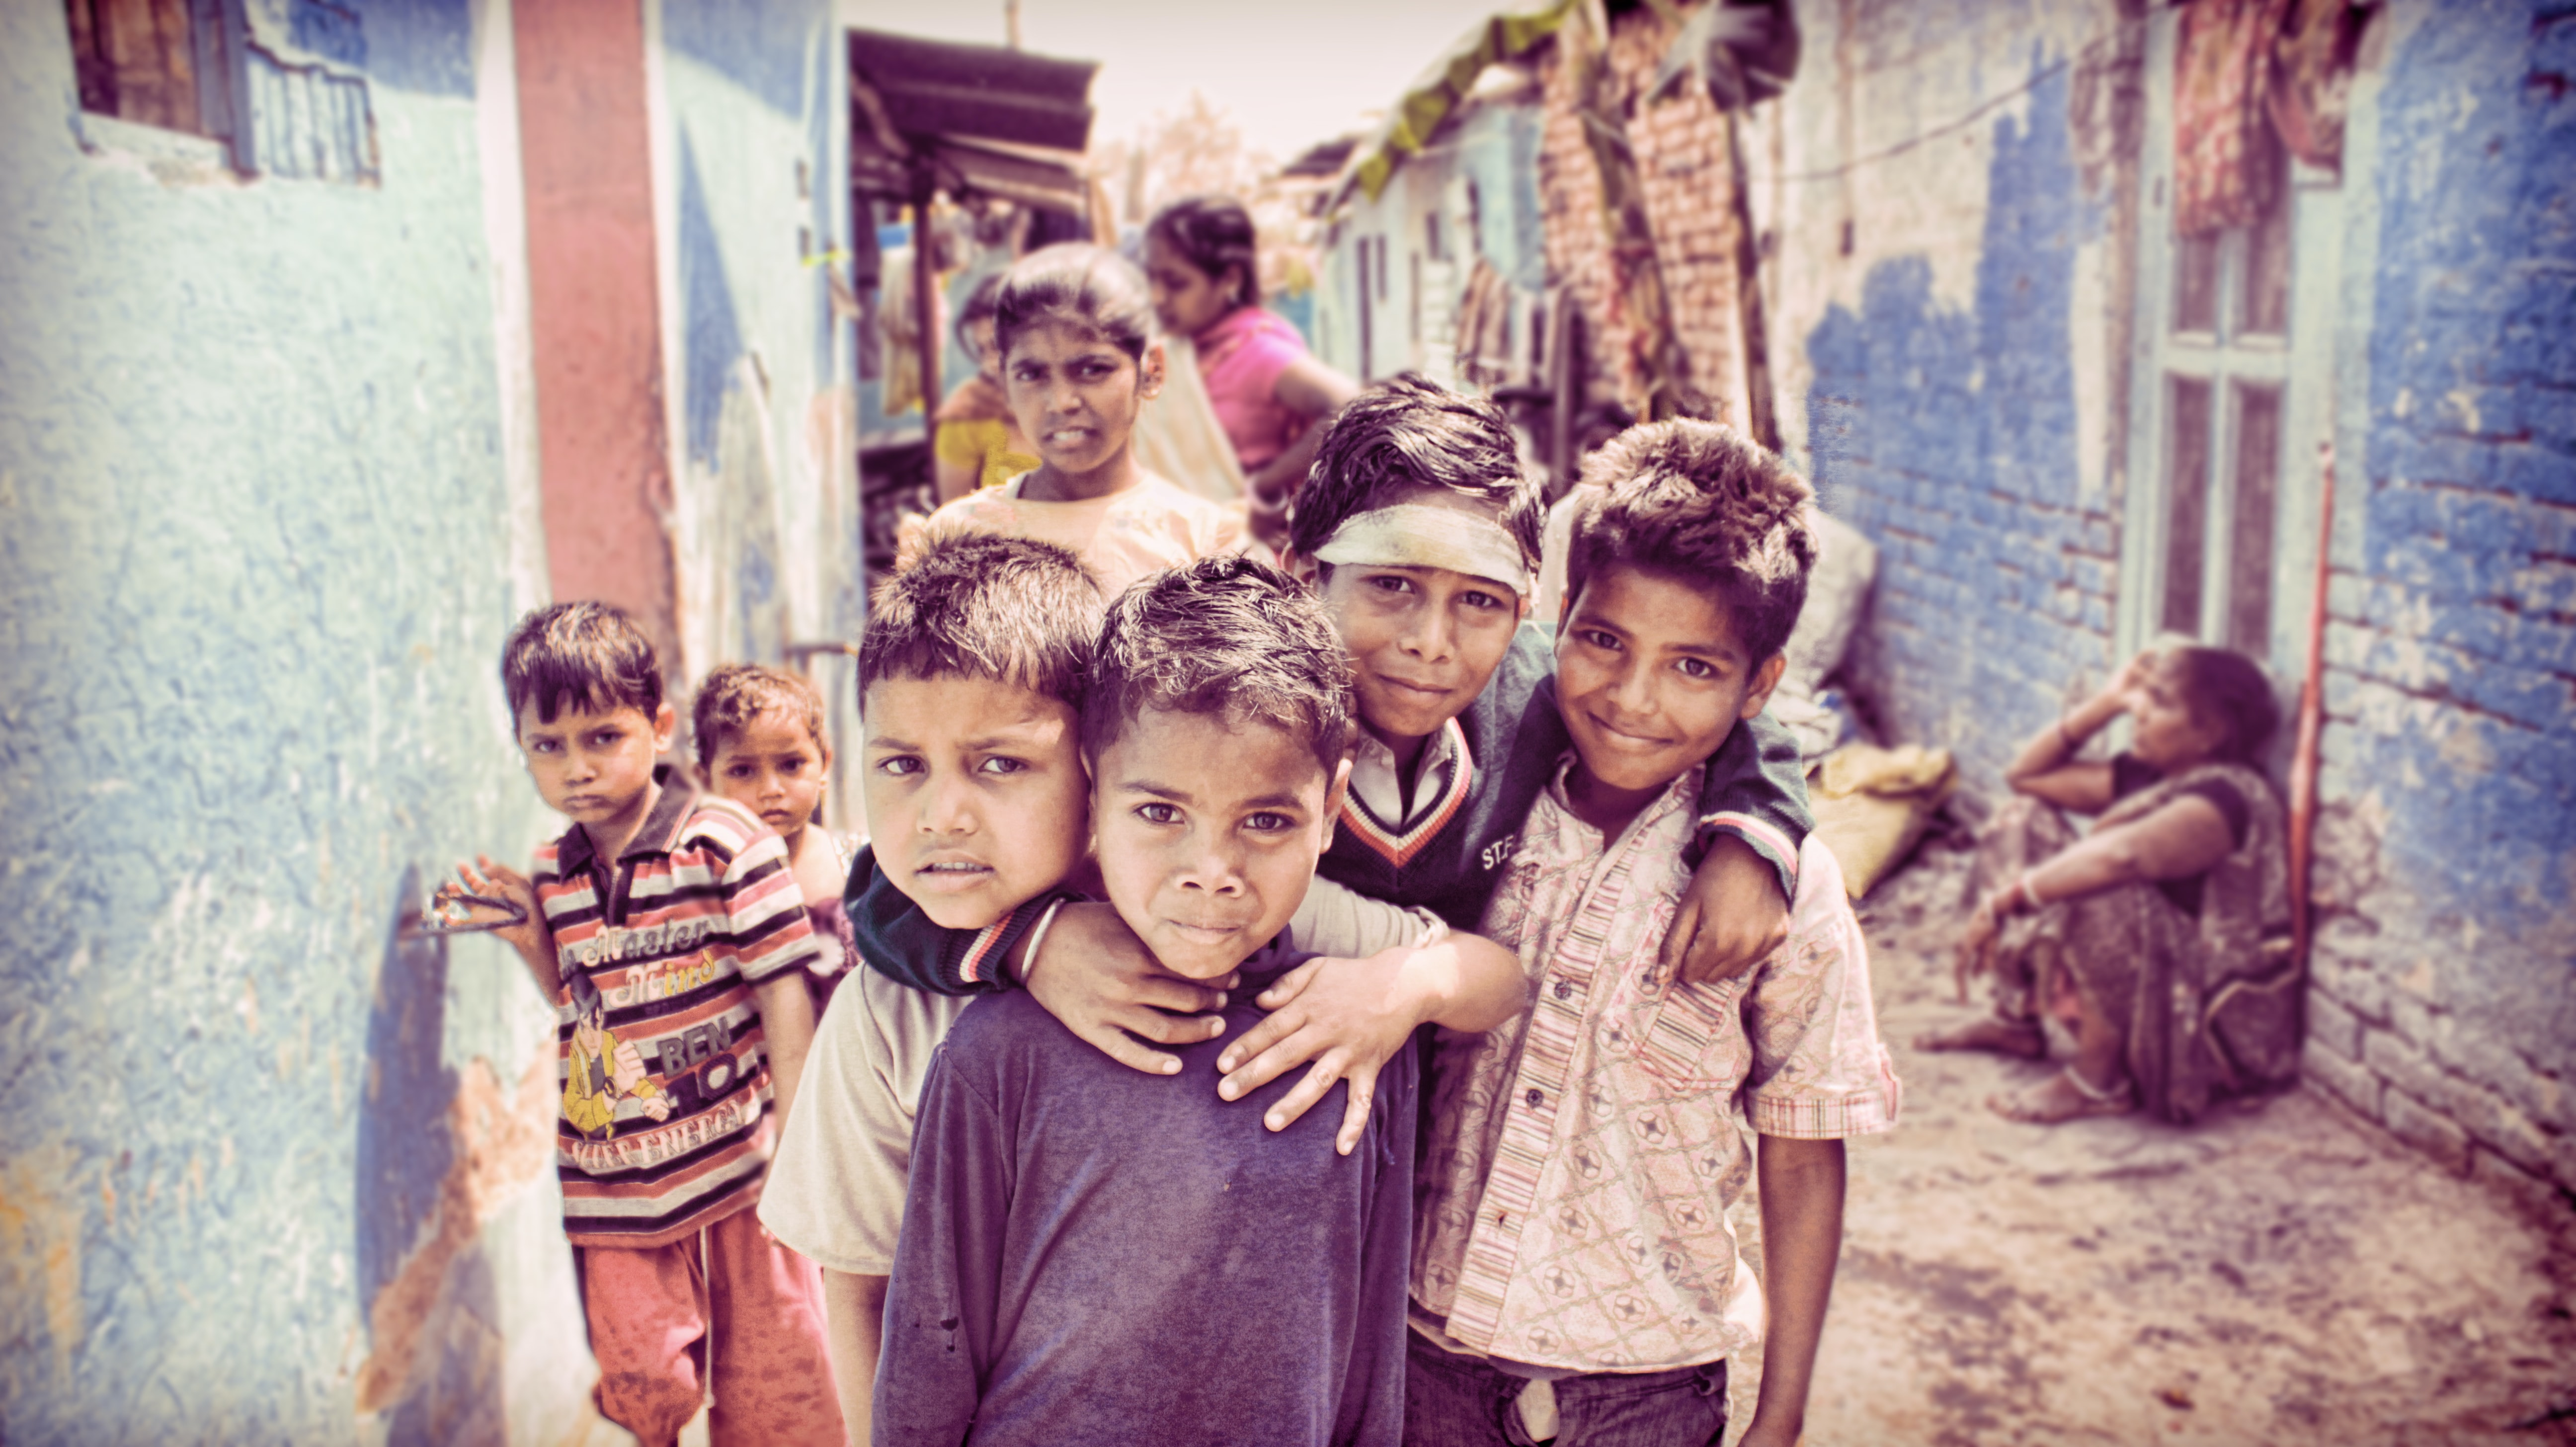 A group of smiling children in a dirt alleyway beside houses in India